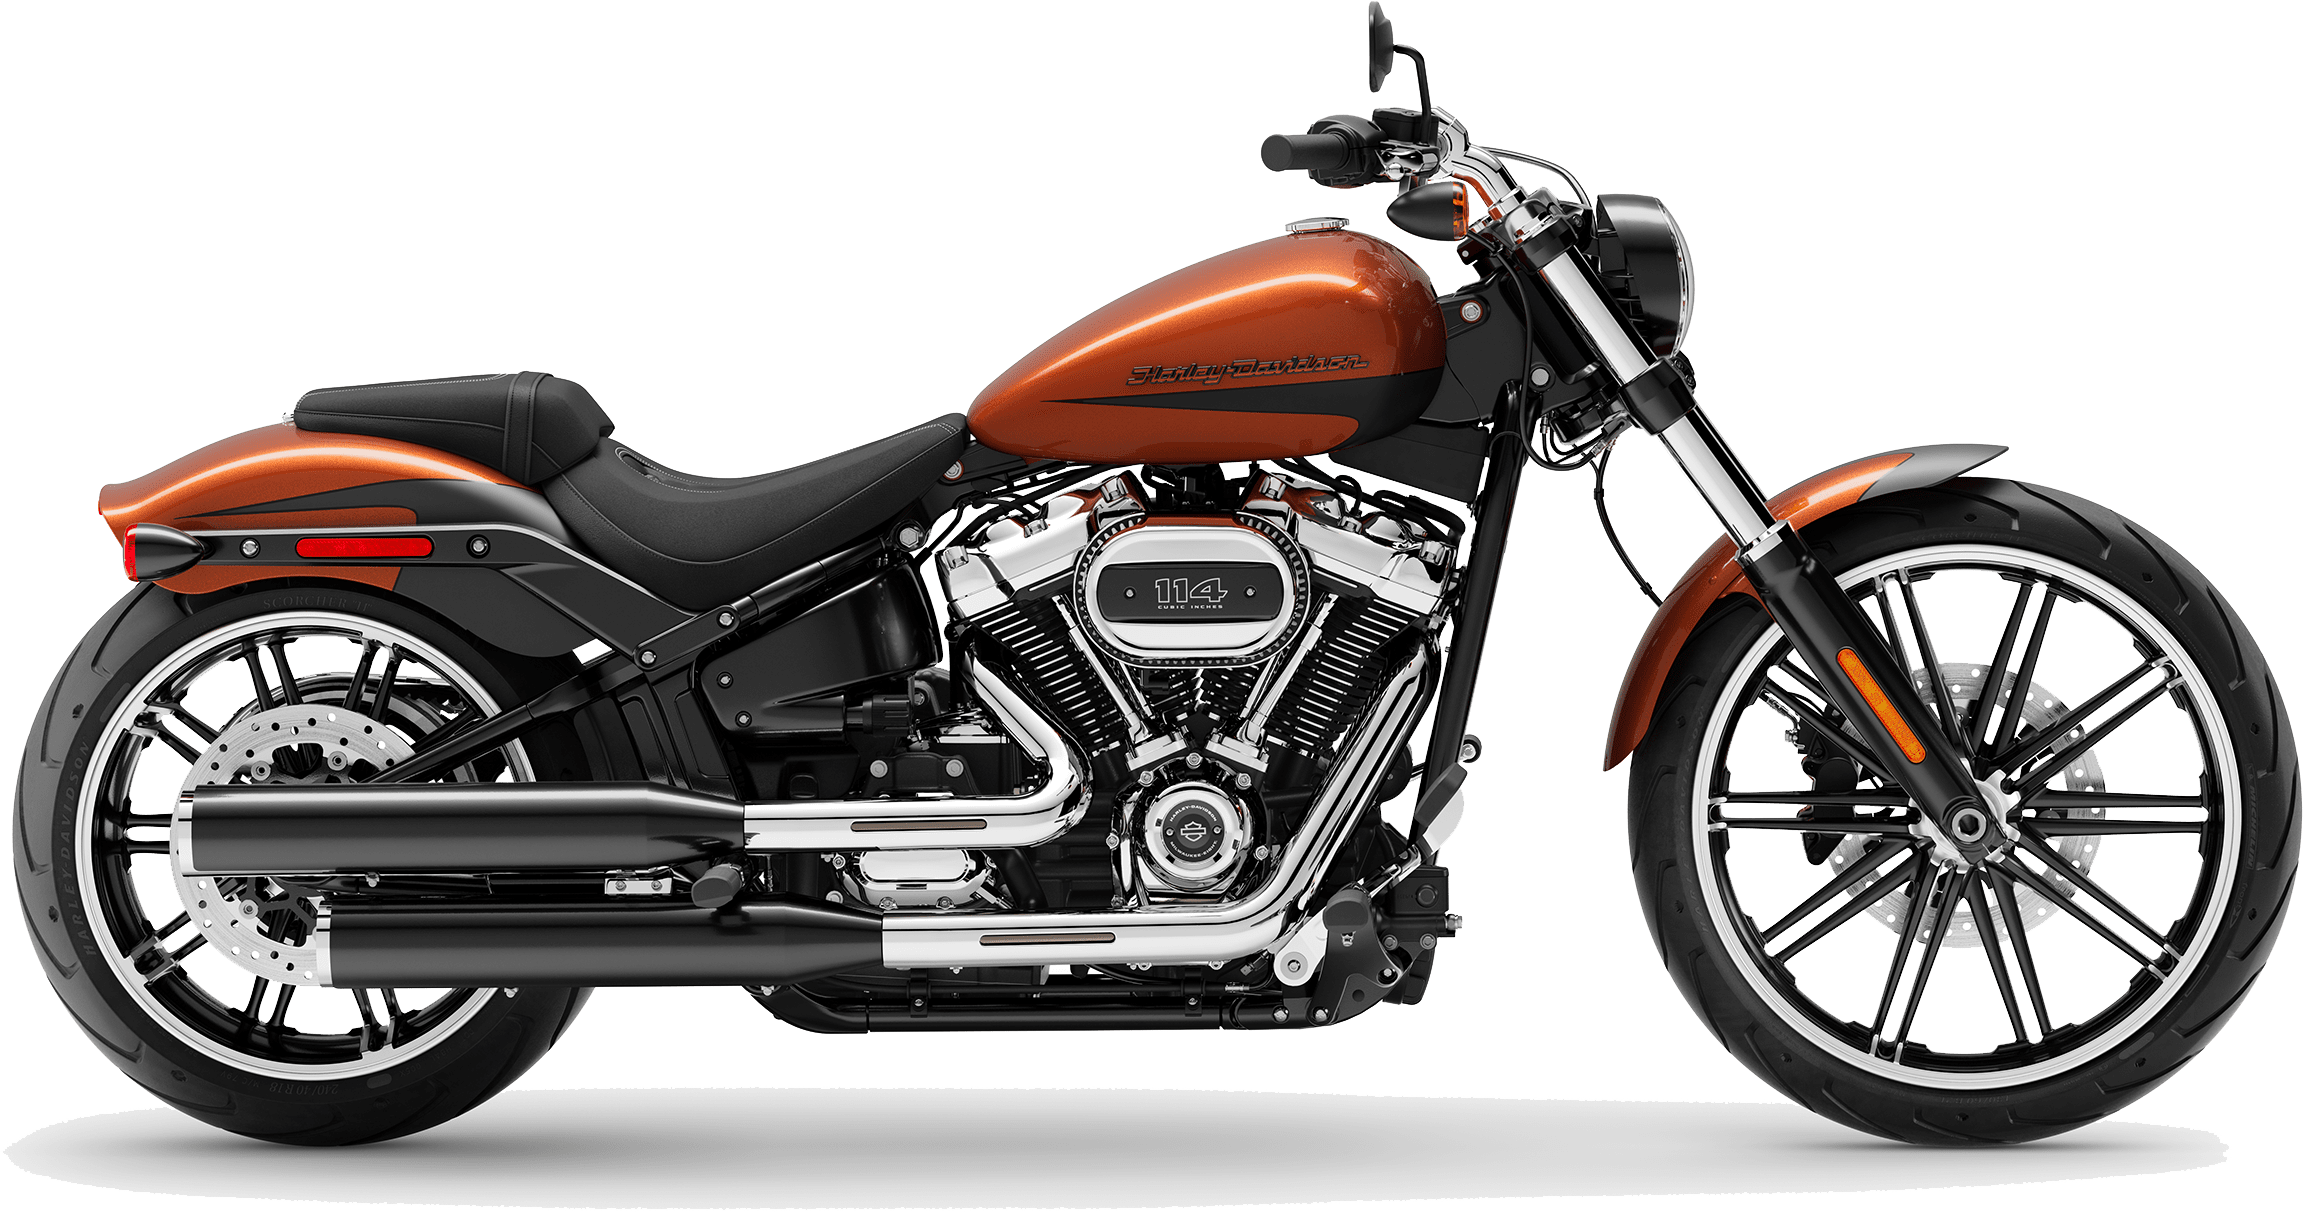 2019 Harley-Davidson Softail Breakout Scorched Orange